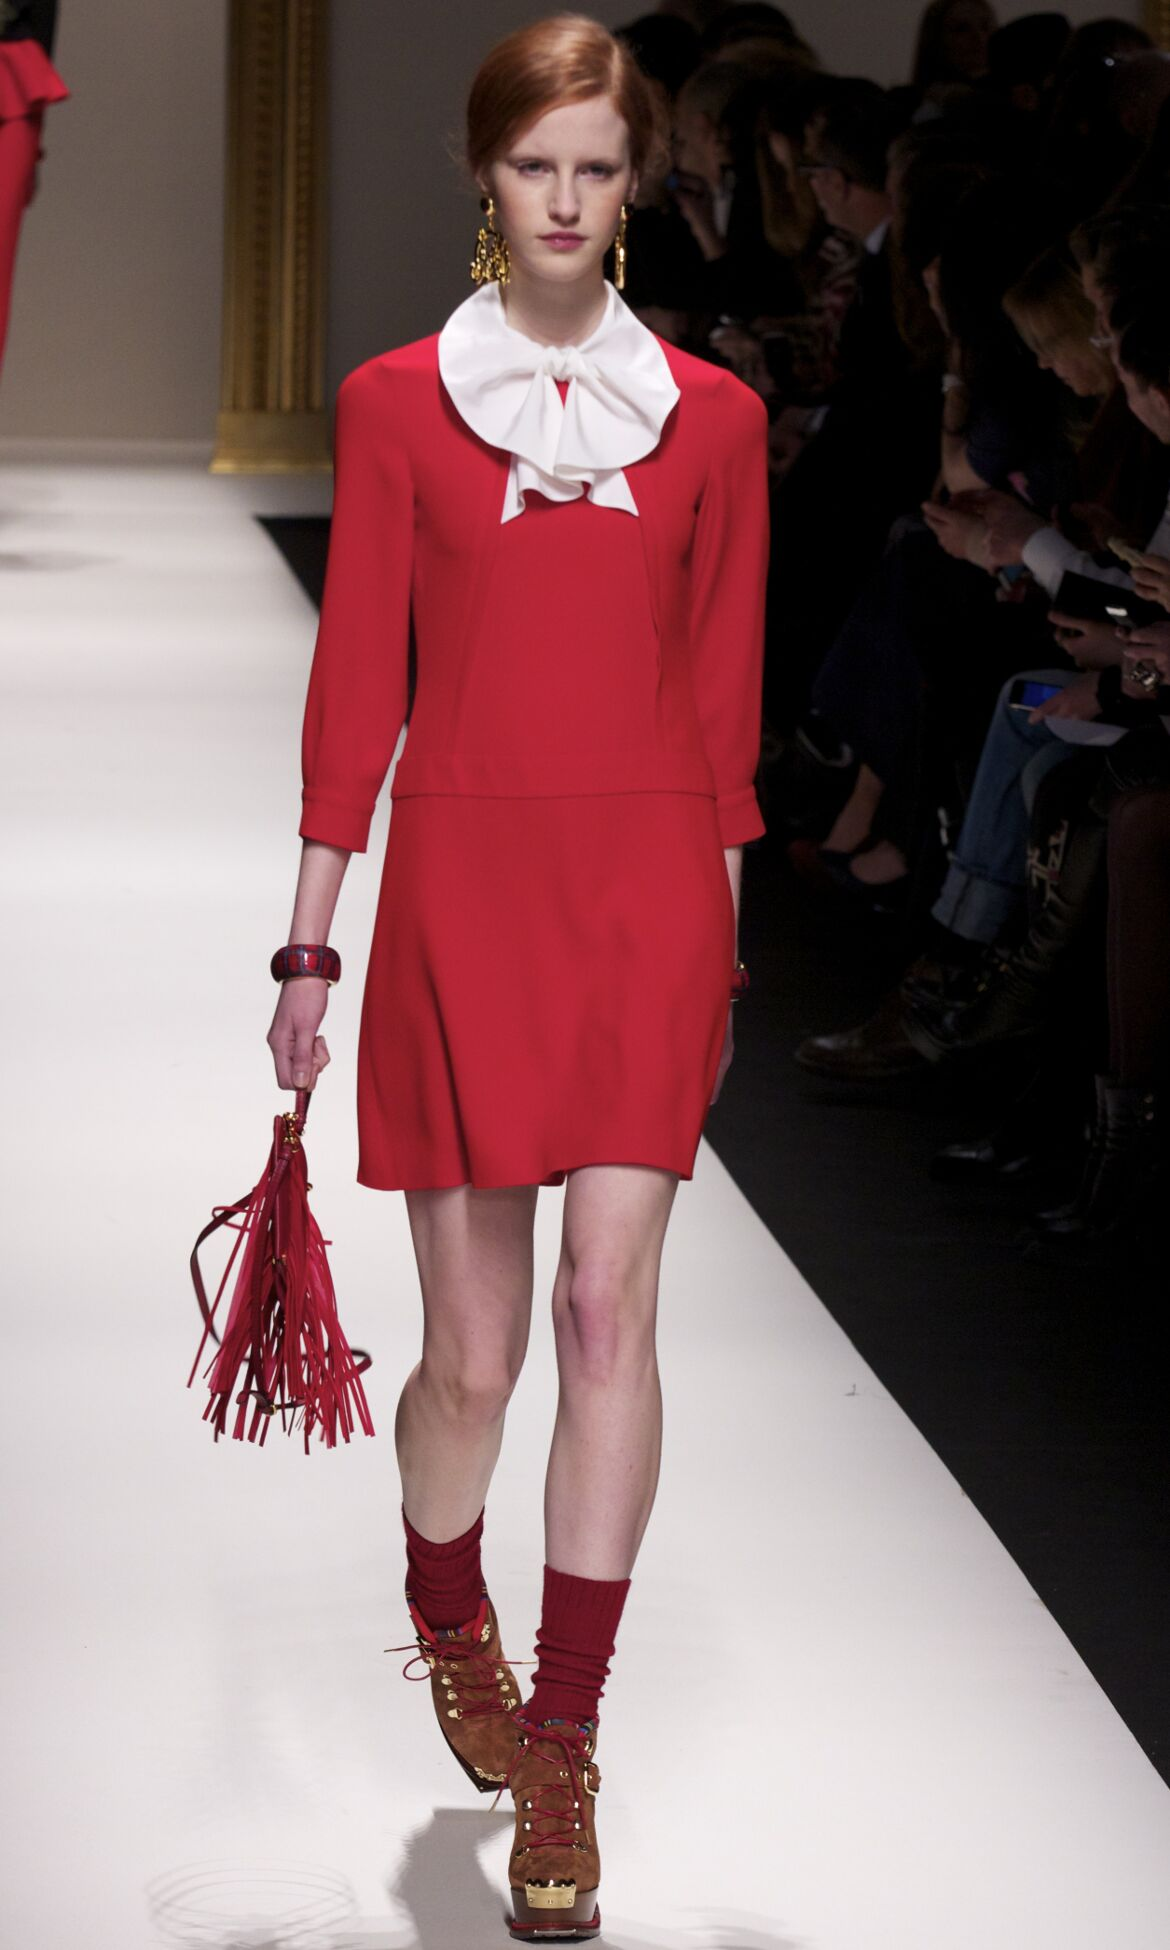 MOSCHINO FALL WINTER 2013-14 WOMEN'S COLLECTION